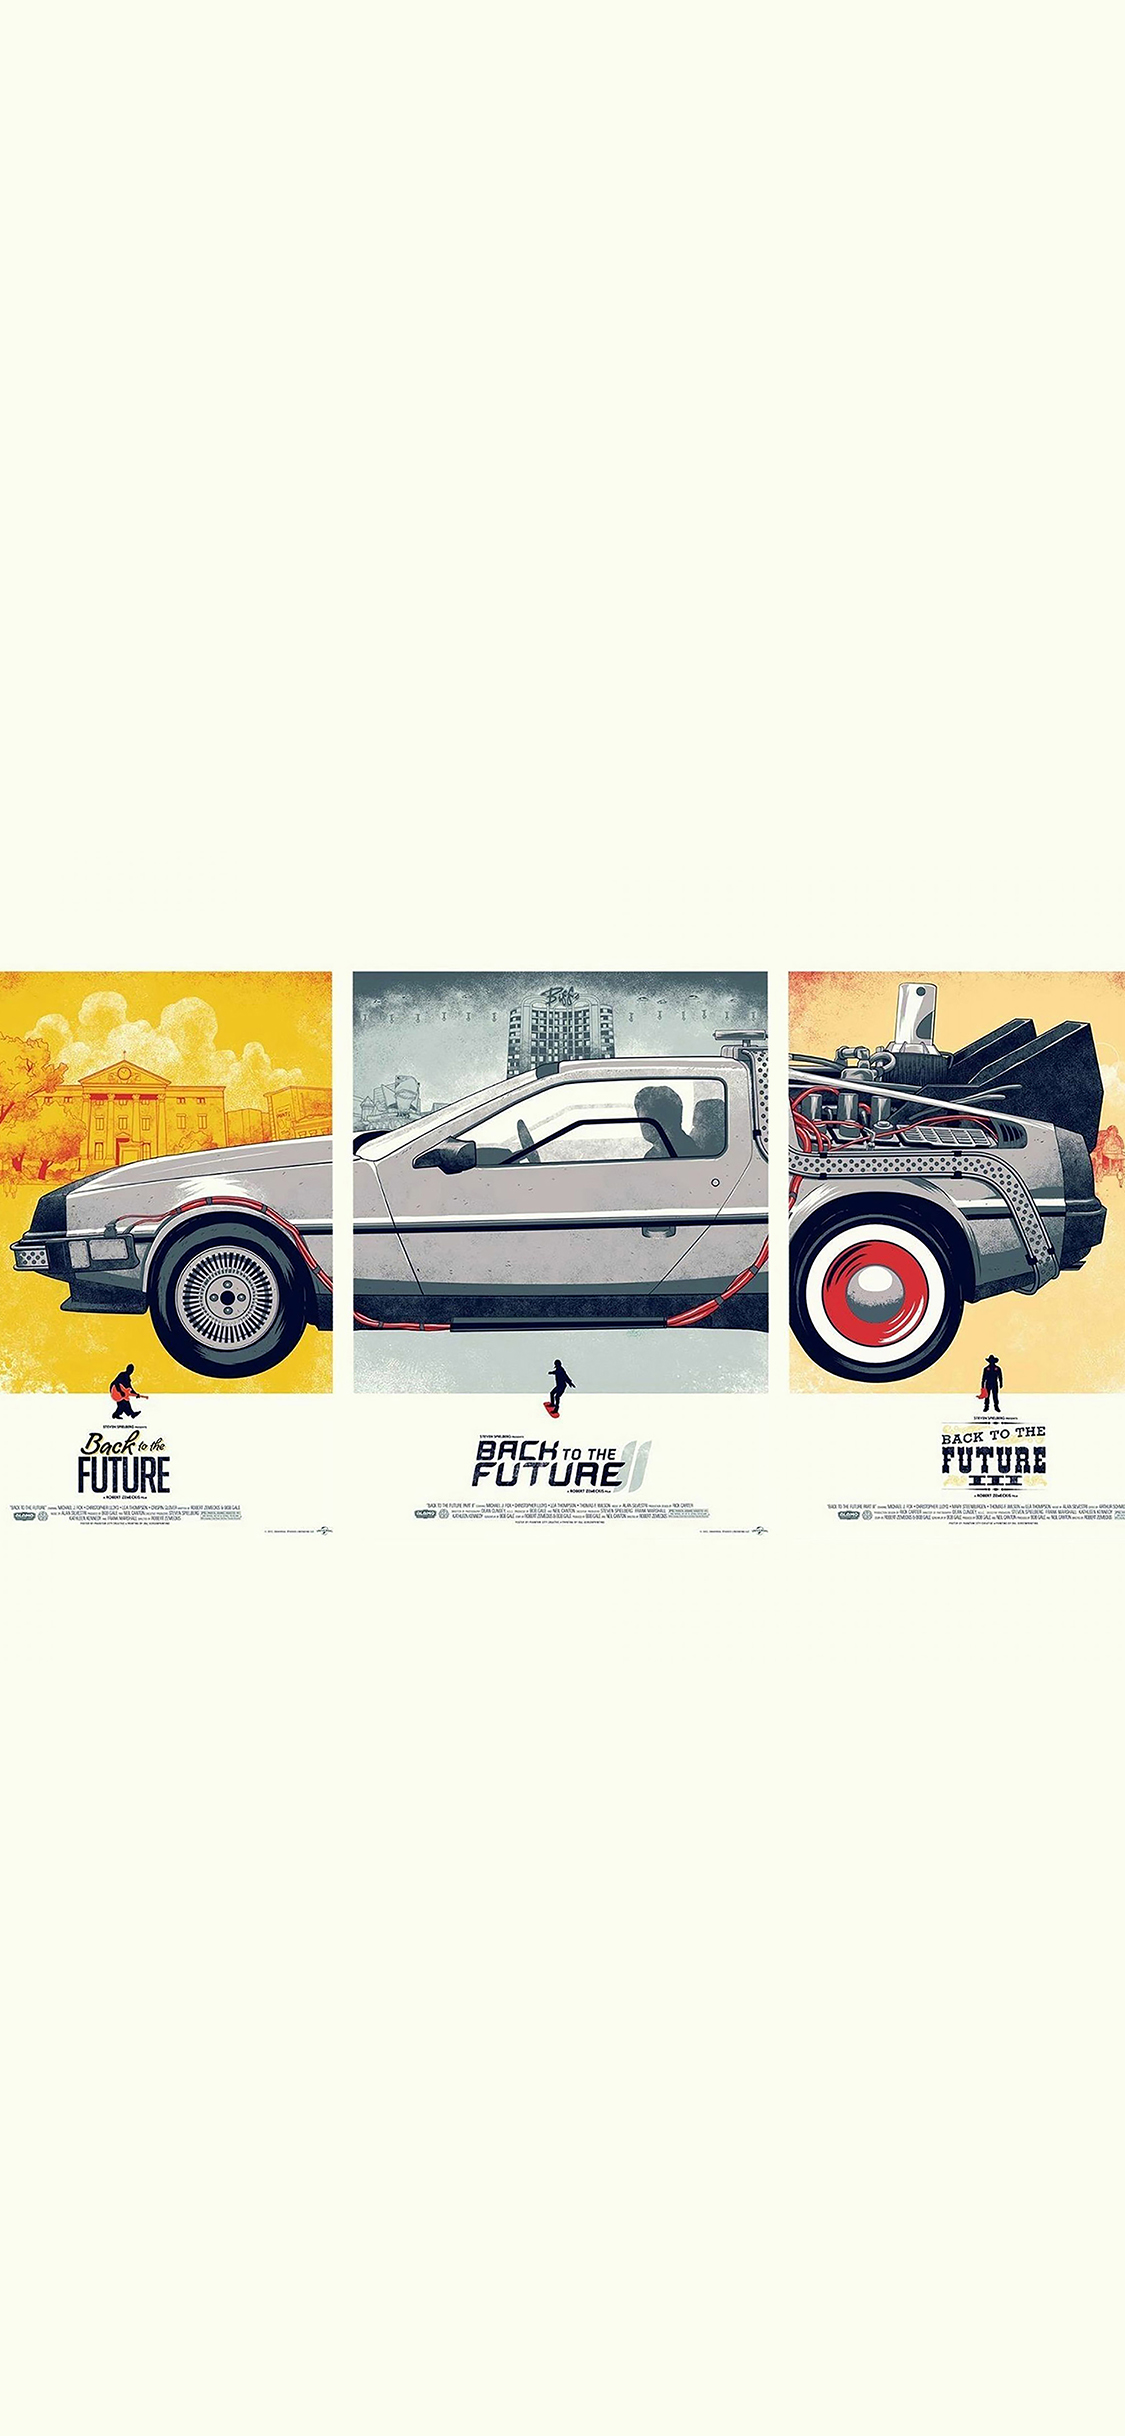 Iphonexpapers Ab88 Wallpaper Back To The Future Film